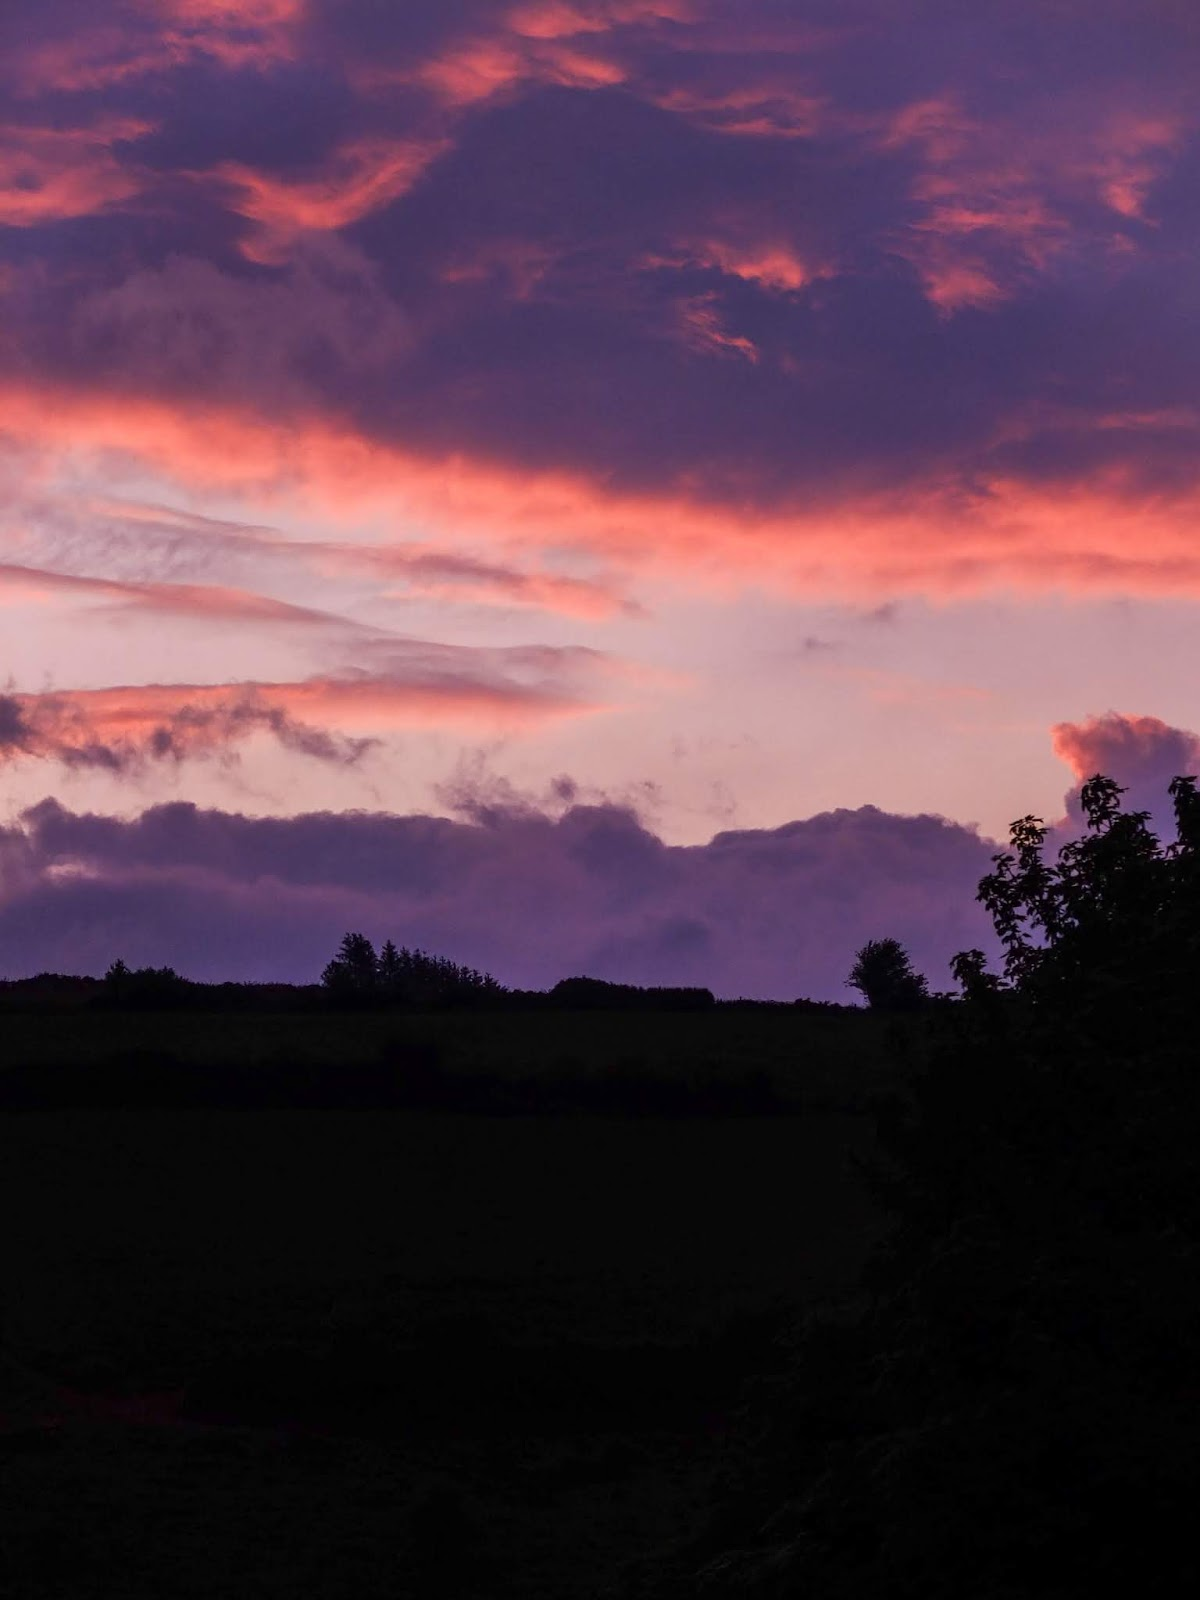 Pink and purple sunset clouds over a hillside in the Boggeragh Mountains in North Co.Cork, Ireland.